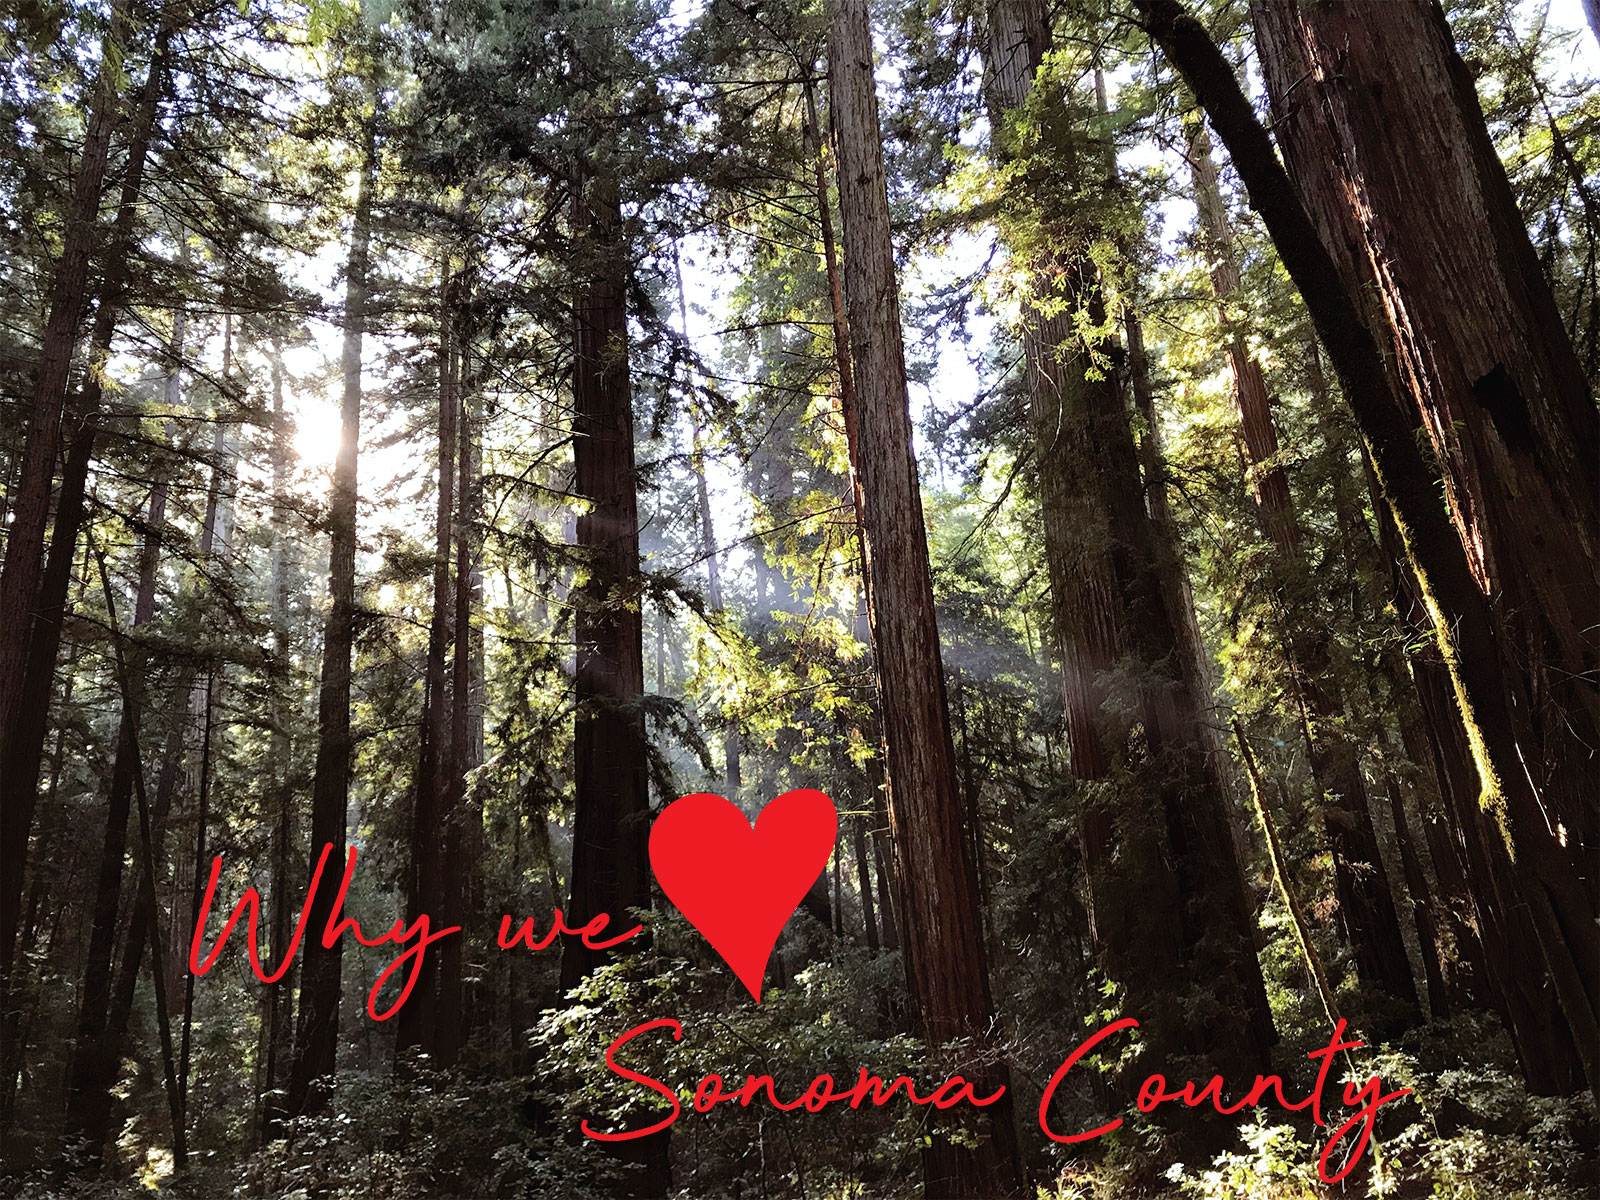 What we love about Sonoma County